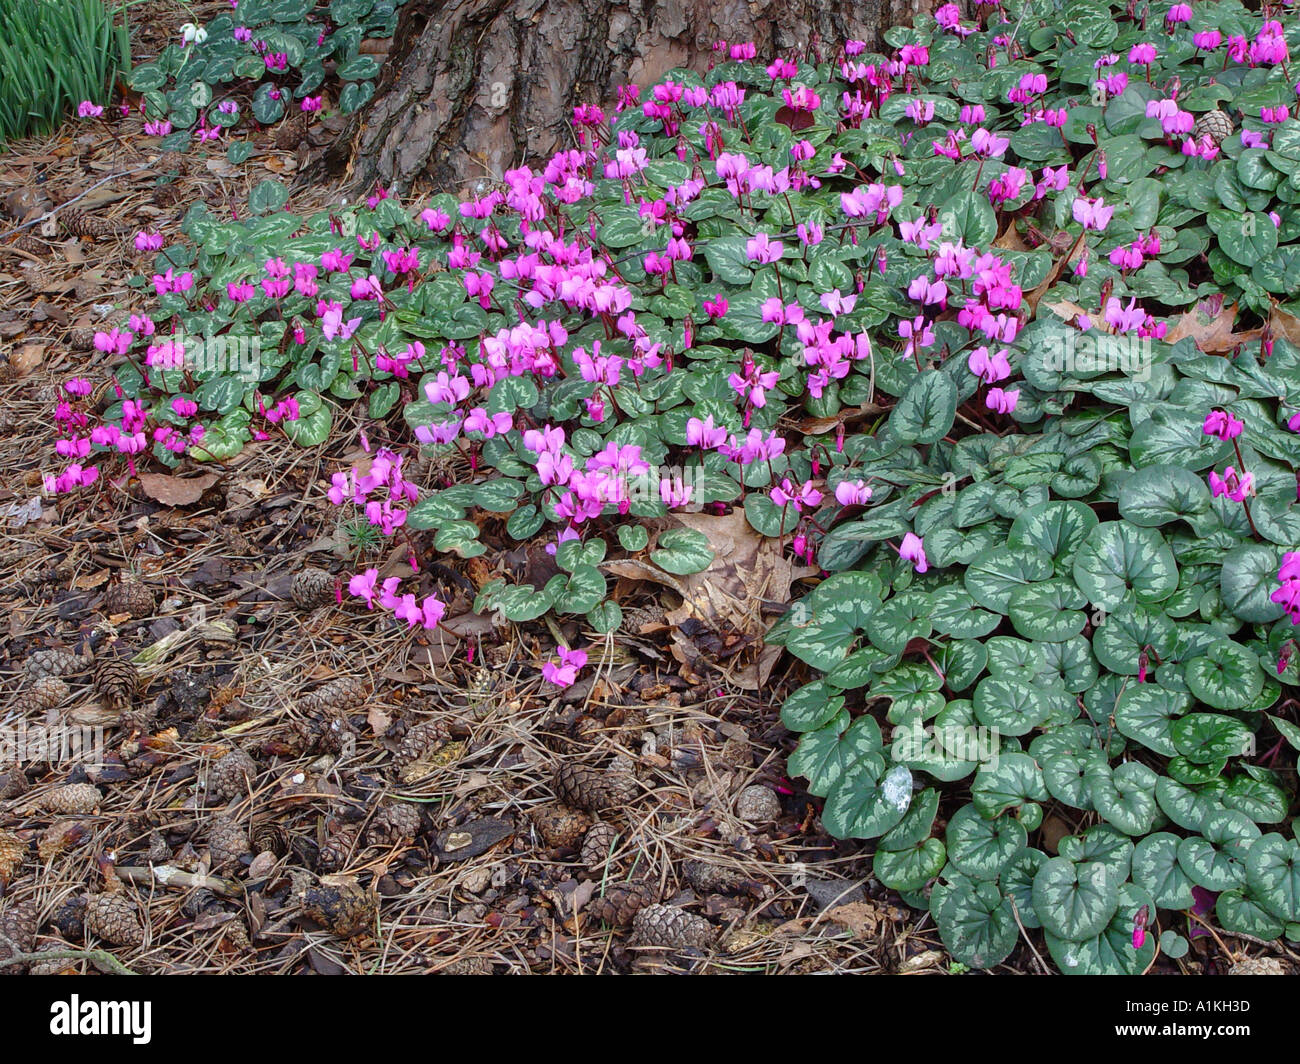 Cyclamen Coum Hybrid Clump Winter Flowering Bulbous Corm Perennial With Good  Ground Cover Foliage